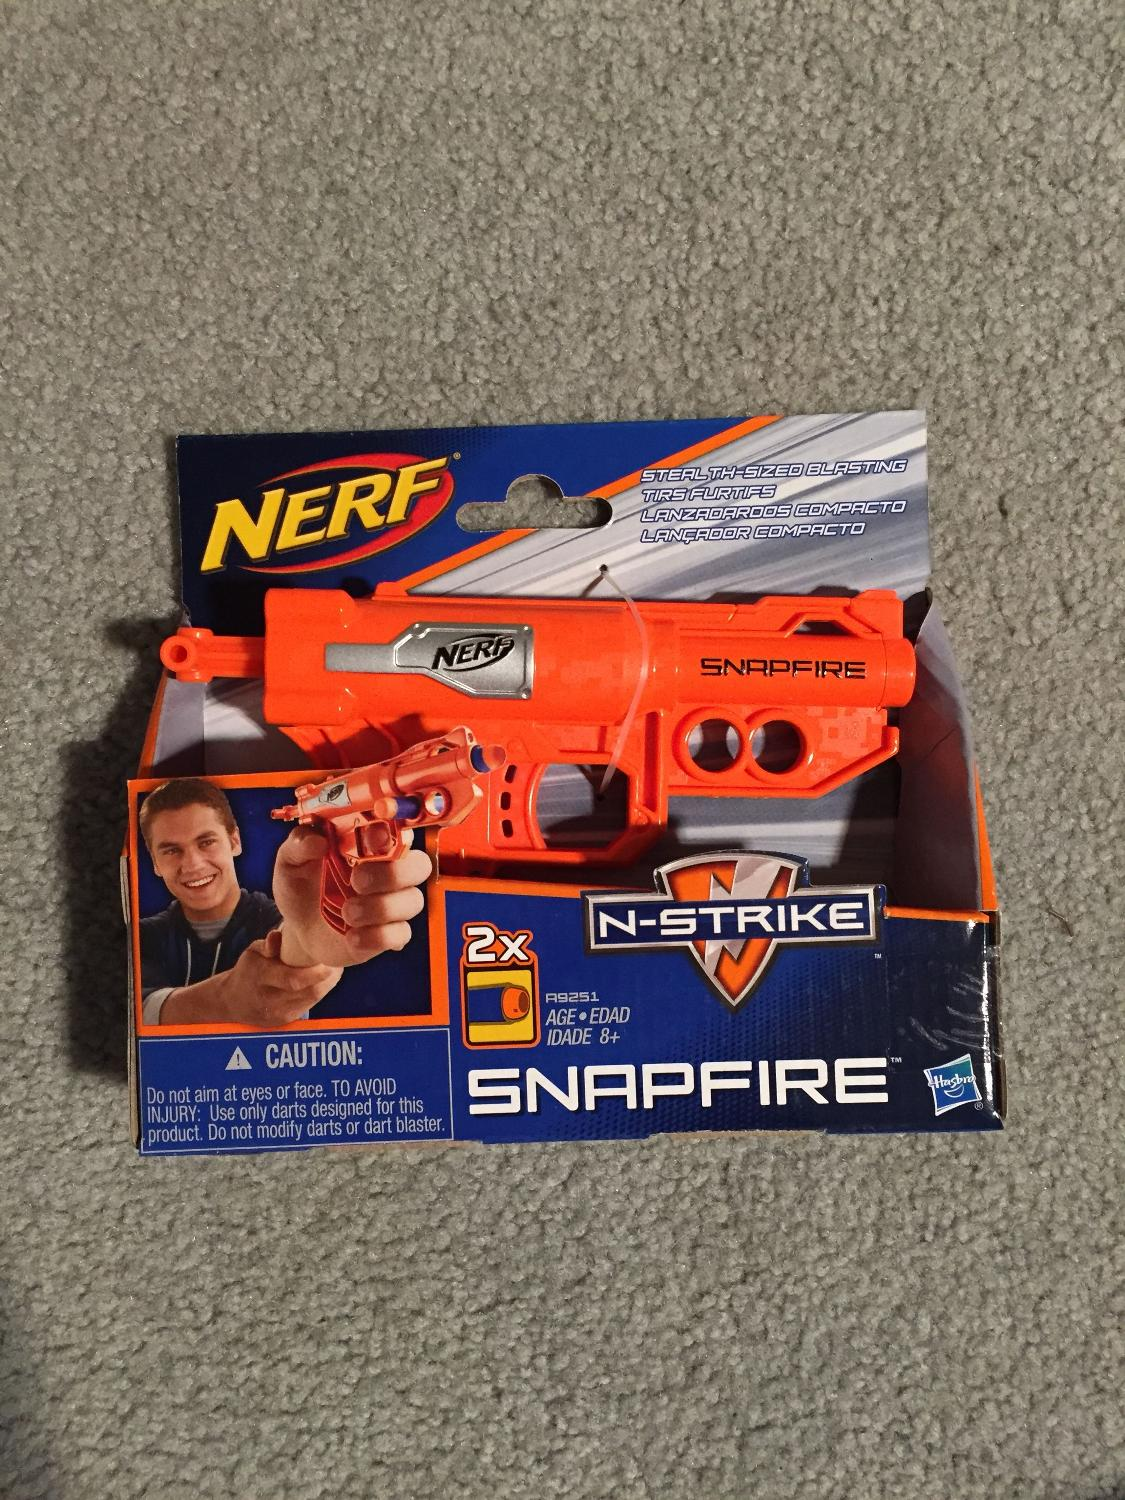 """Brand new Nerf N strike """"snap fire"""" mini gun  Great Xmas gift! ( Swipe left  for another pic )"""